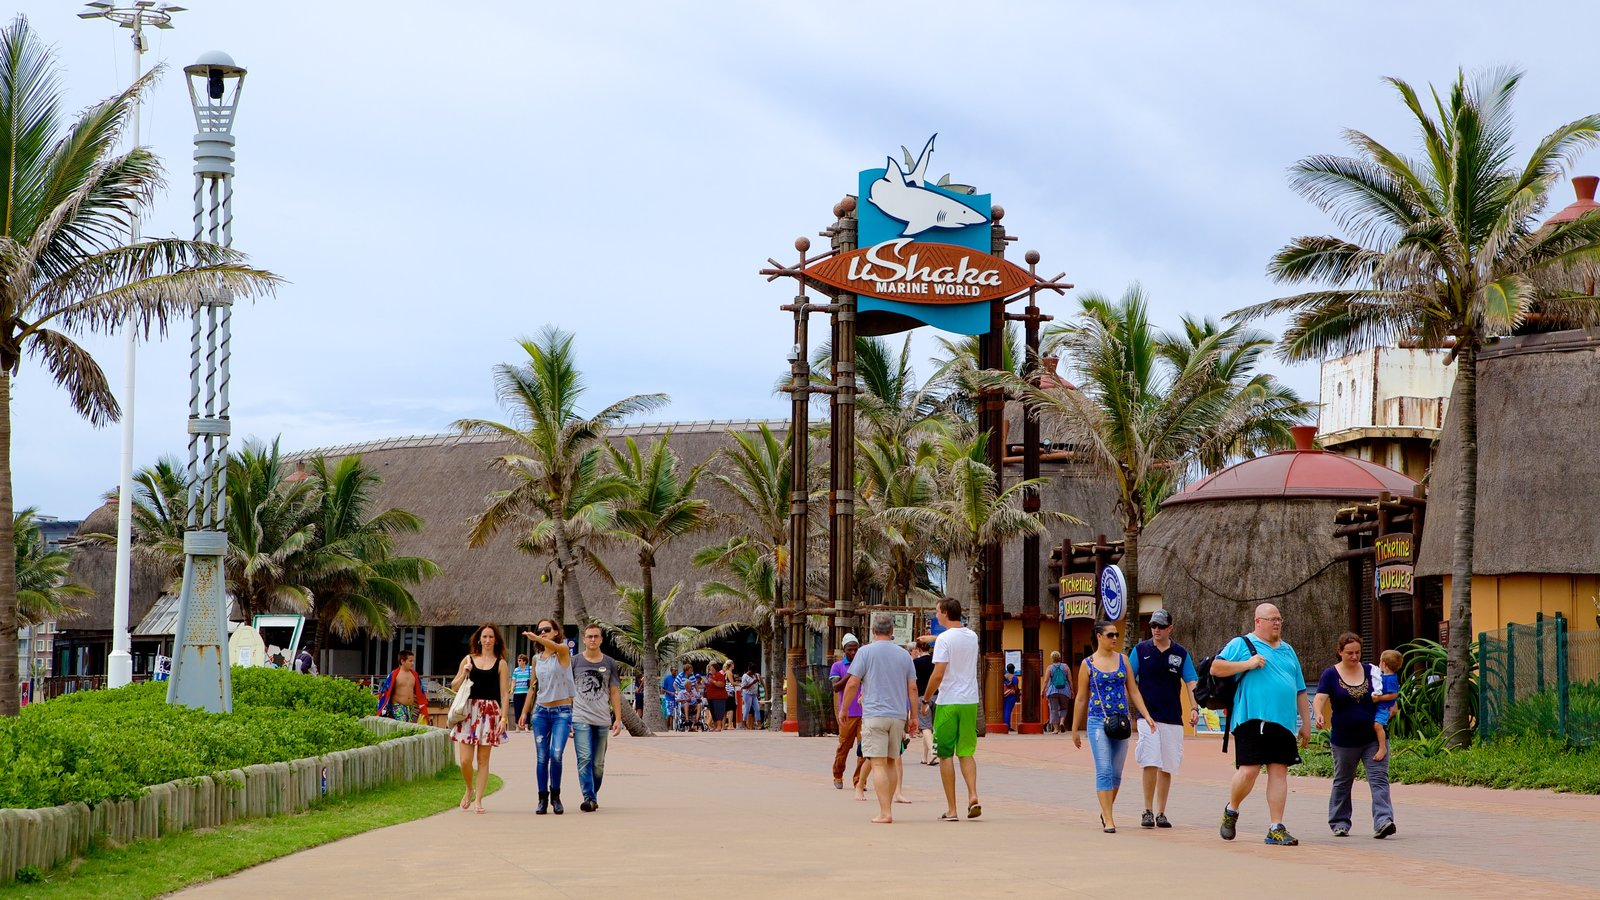 uShaka Marine World featuring signage and rides as well as a large group of people